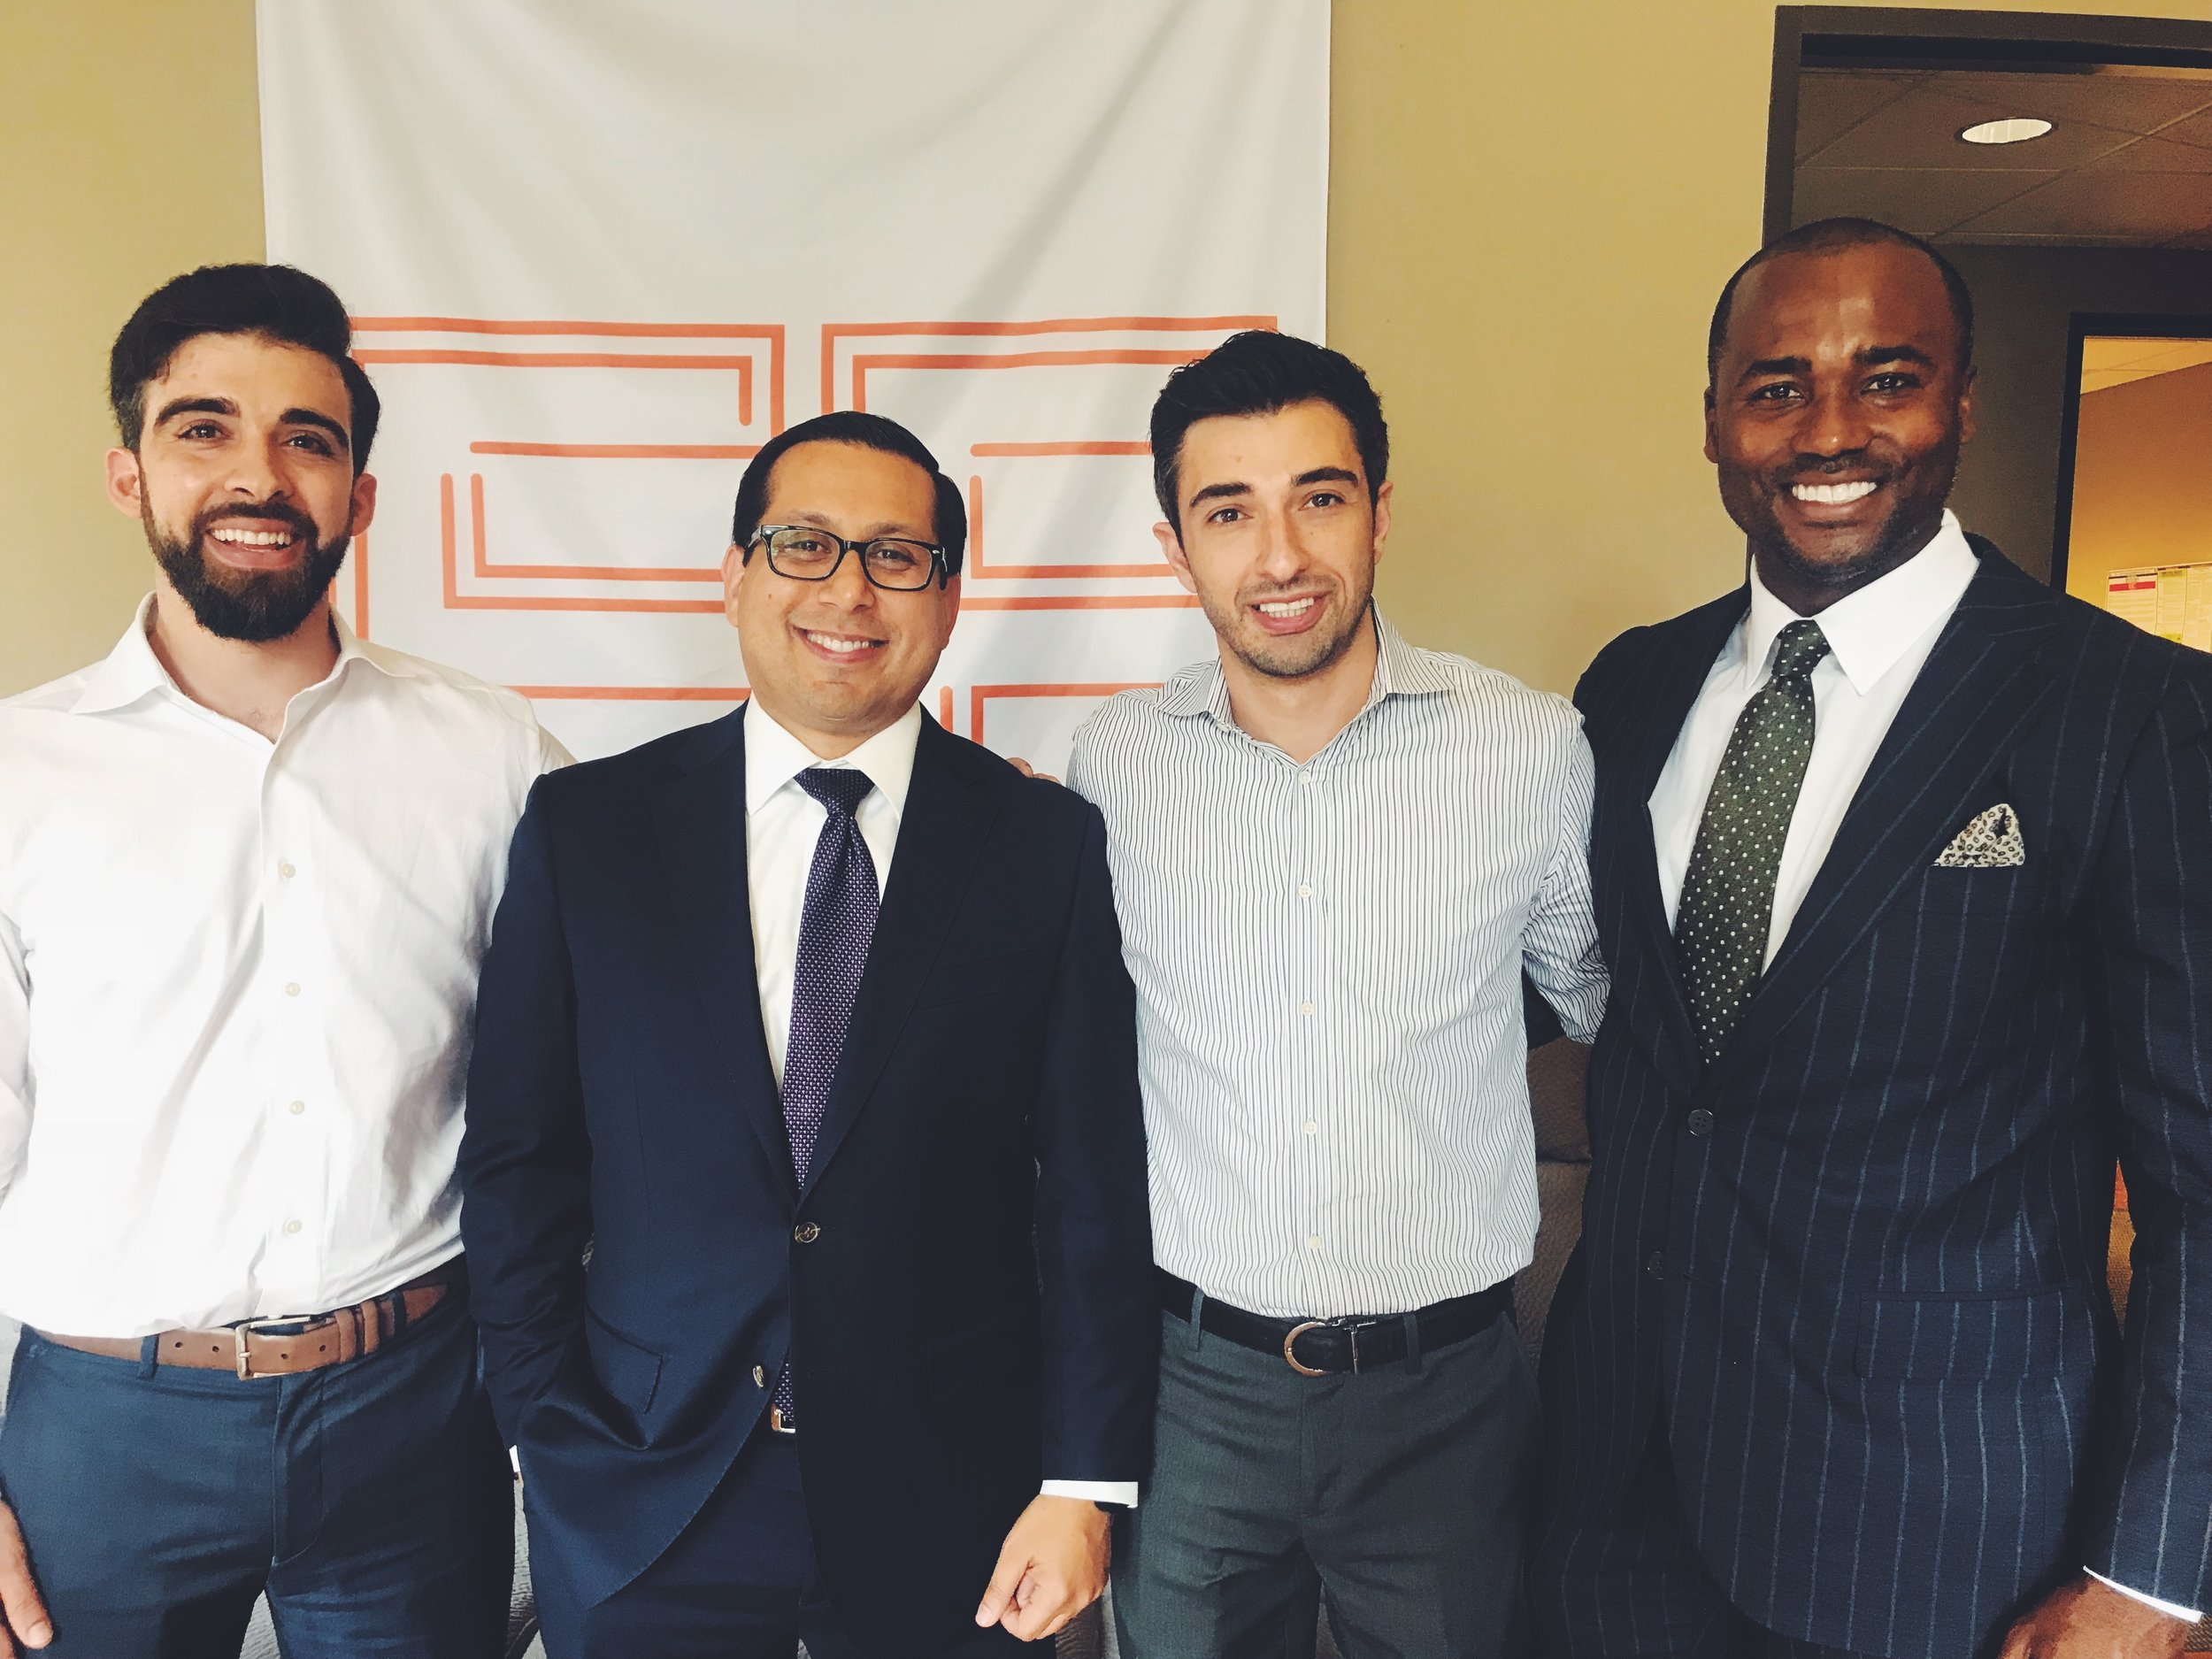 (L-R)Easy Expunctions CEO Yousef Kassim, State Rep. Diego, Bernal (D-San Antonio), Easy Expunctions CMO Rommy Kassim, and Bingham Group Founder CEO A.J. Bingham)